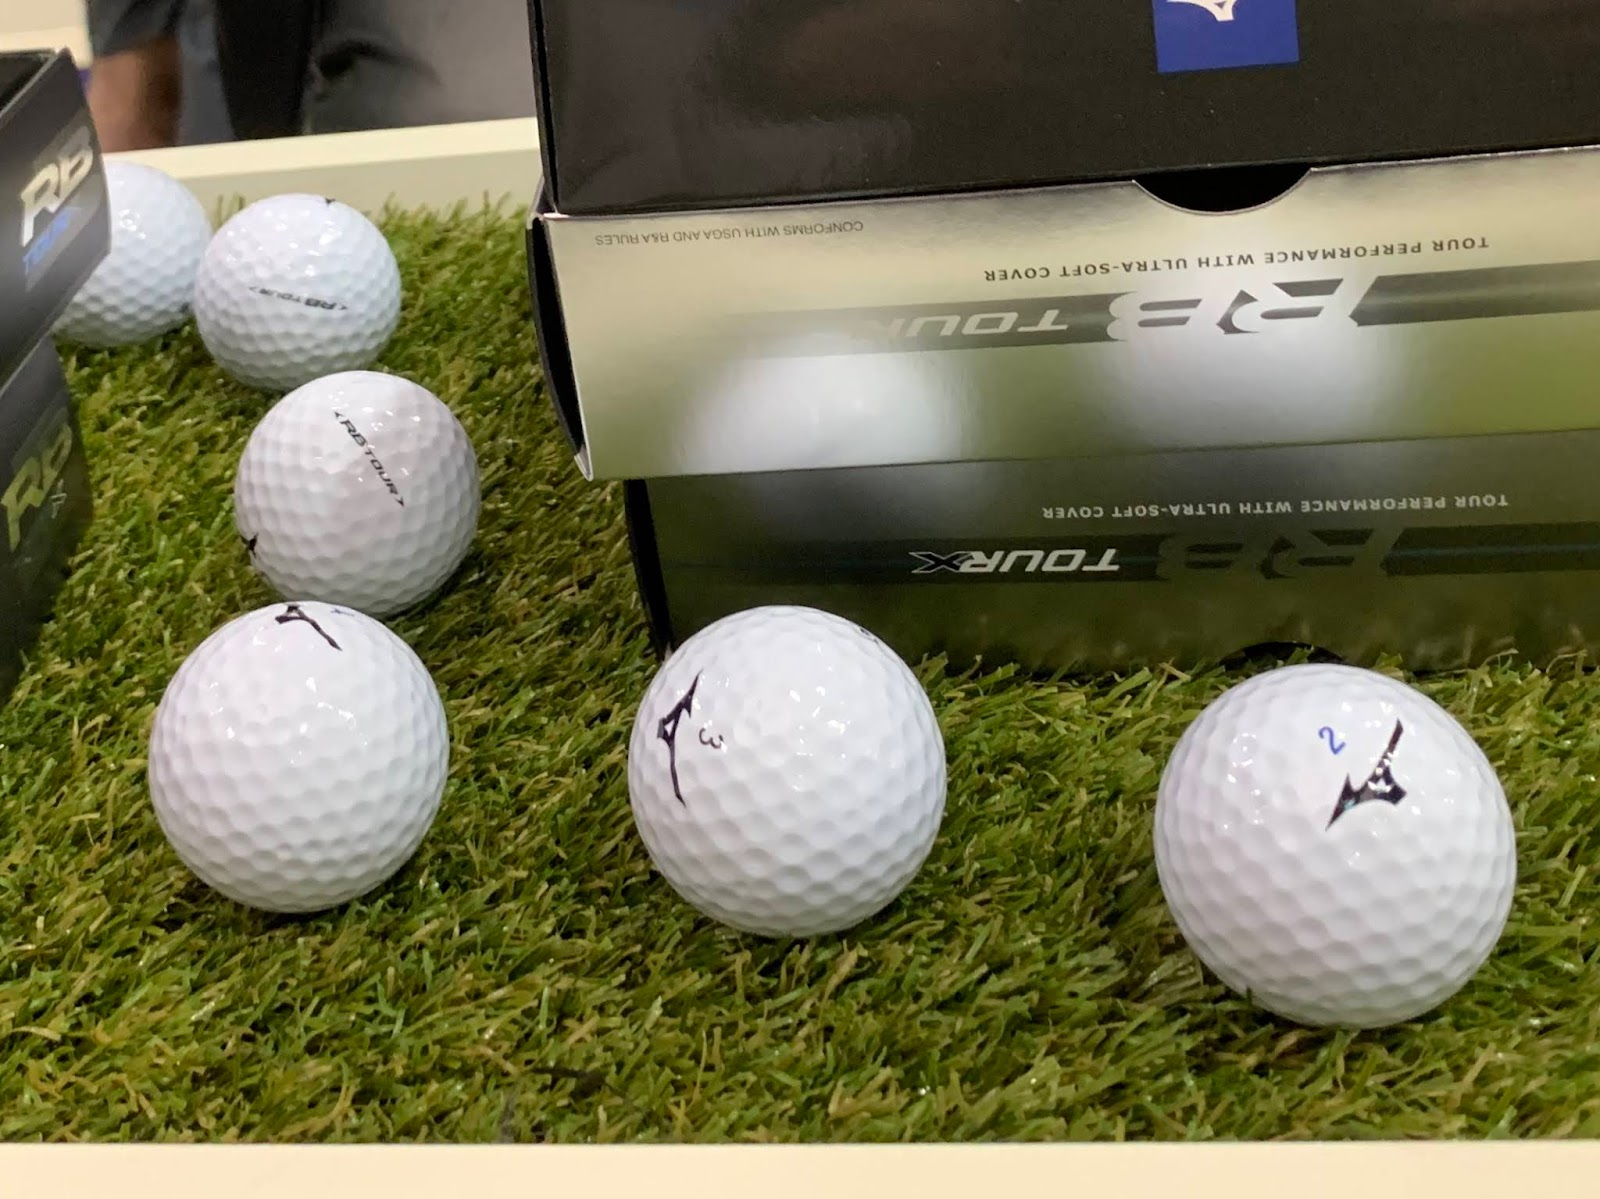 a3ab41d5ce91 A quick look at the new RB golf balls and you'll see the C-Dimple design  features different edge angles, shapes and diameters, and even total  coverage ...